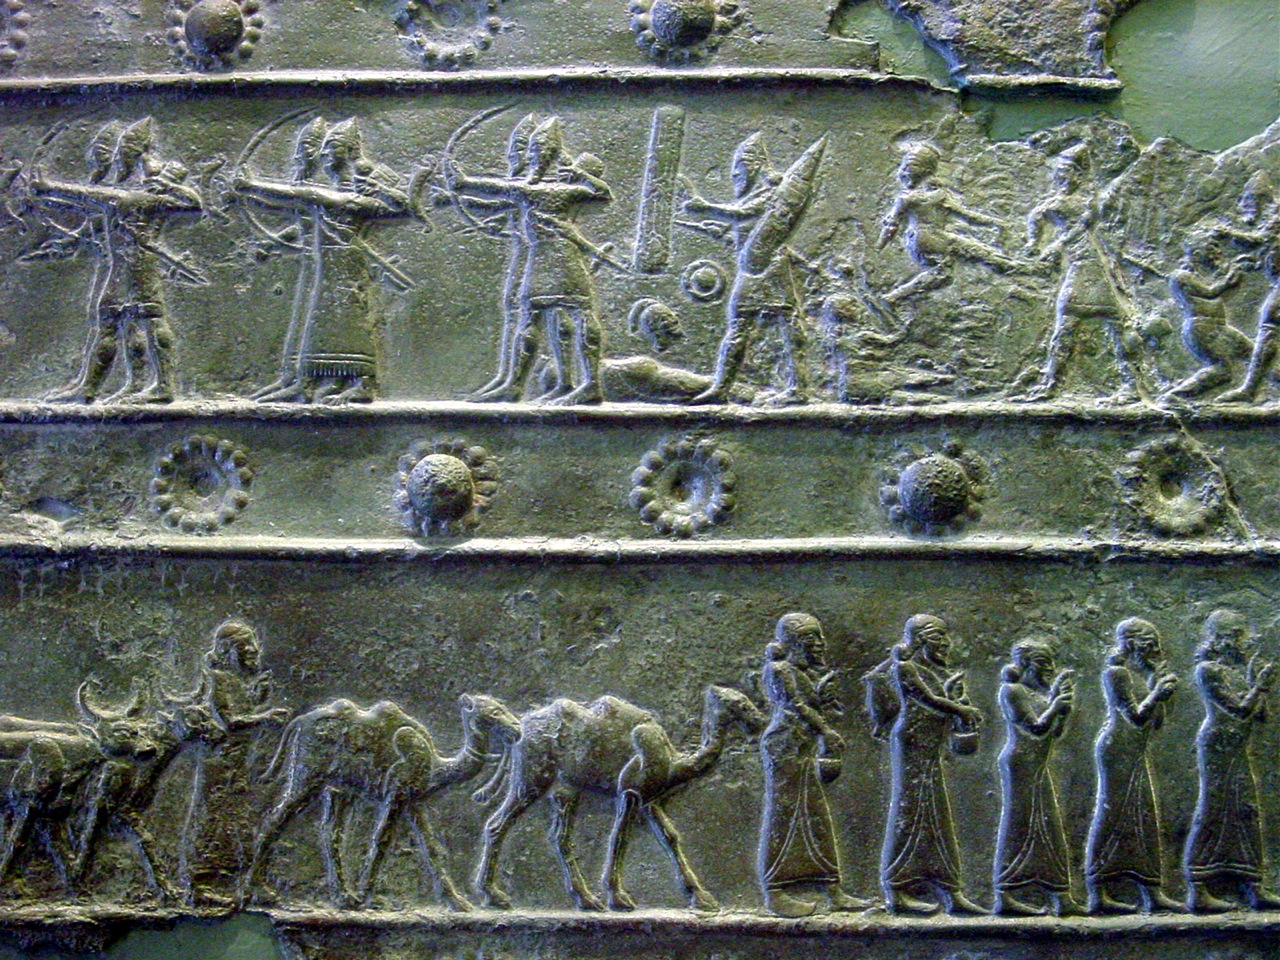 artefact of Mesopotamian archers & hand-to-hand war scene